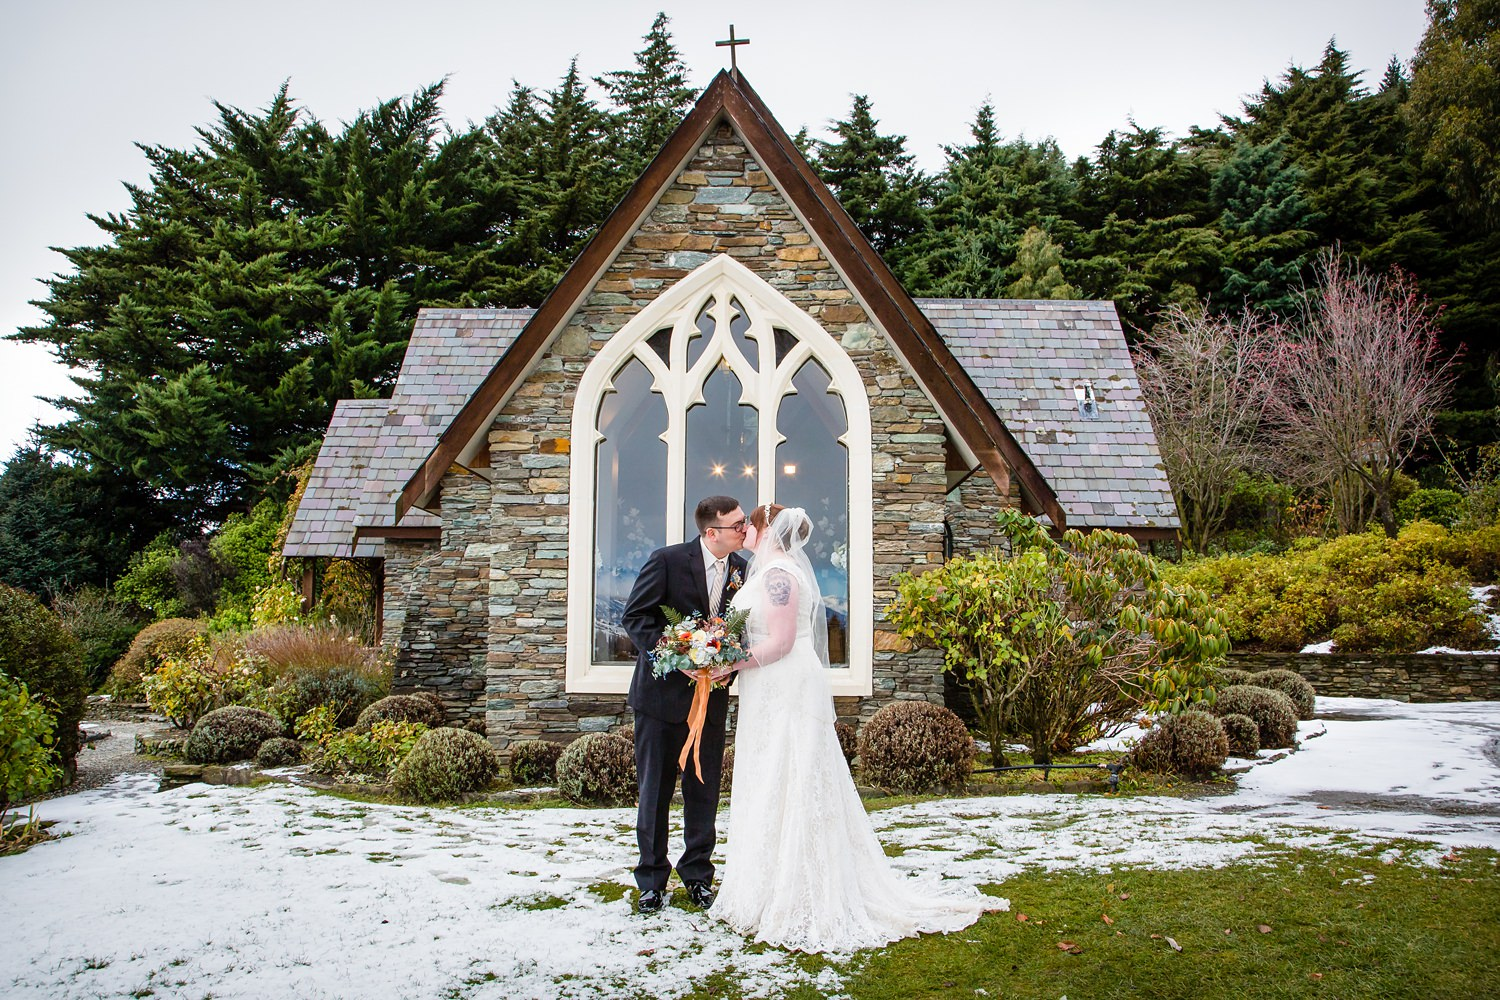 Queenstown wedding | Wanaka Winter Wedding | Mountain wedding | Photography by Ruth Fluidphoto